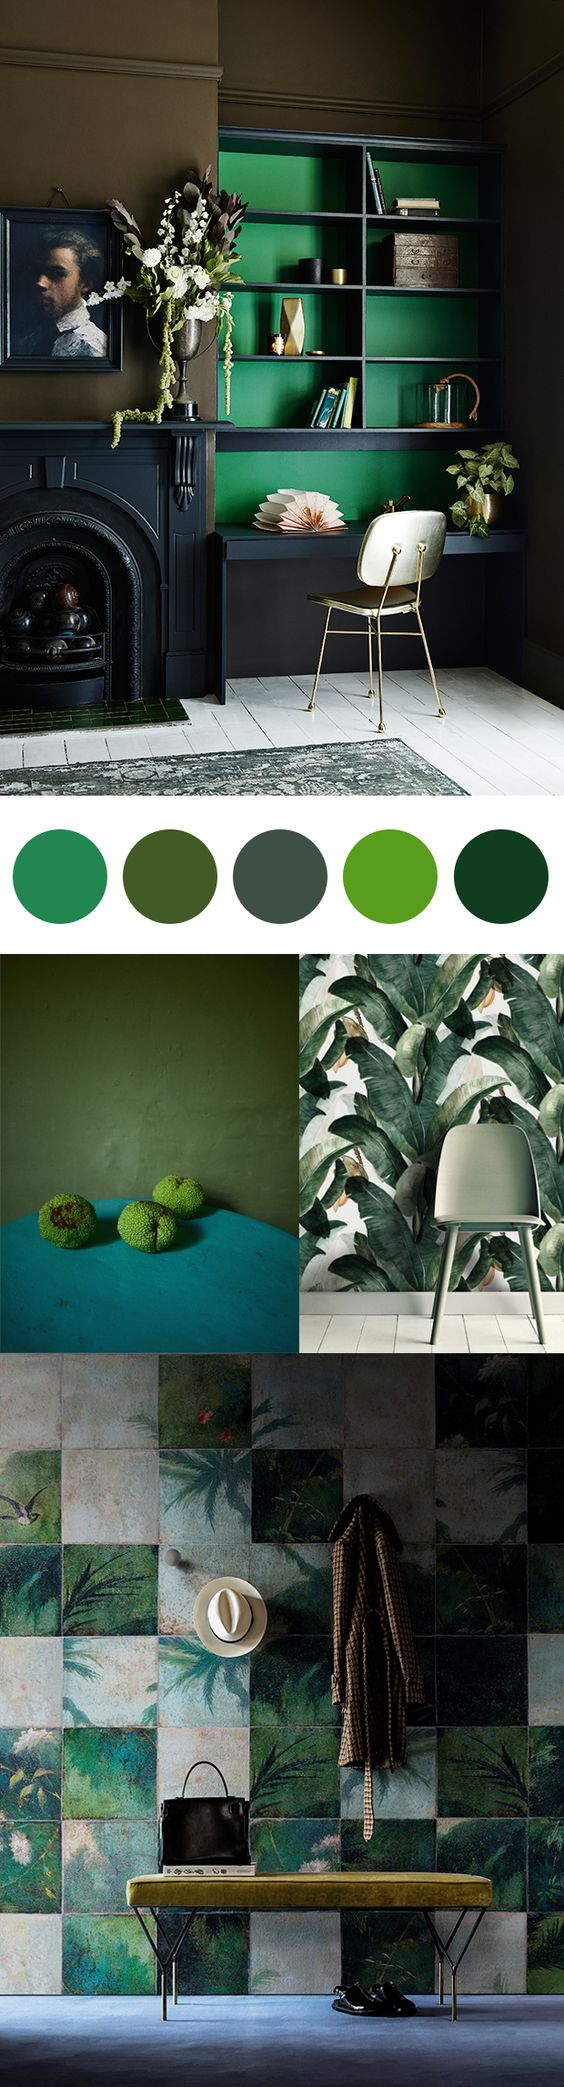 shades-of-green-home-decor